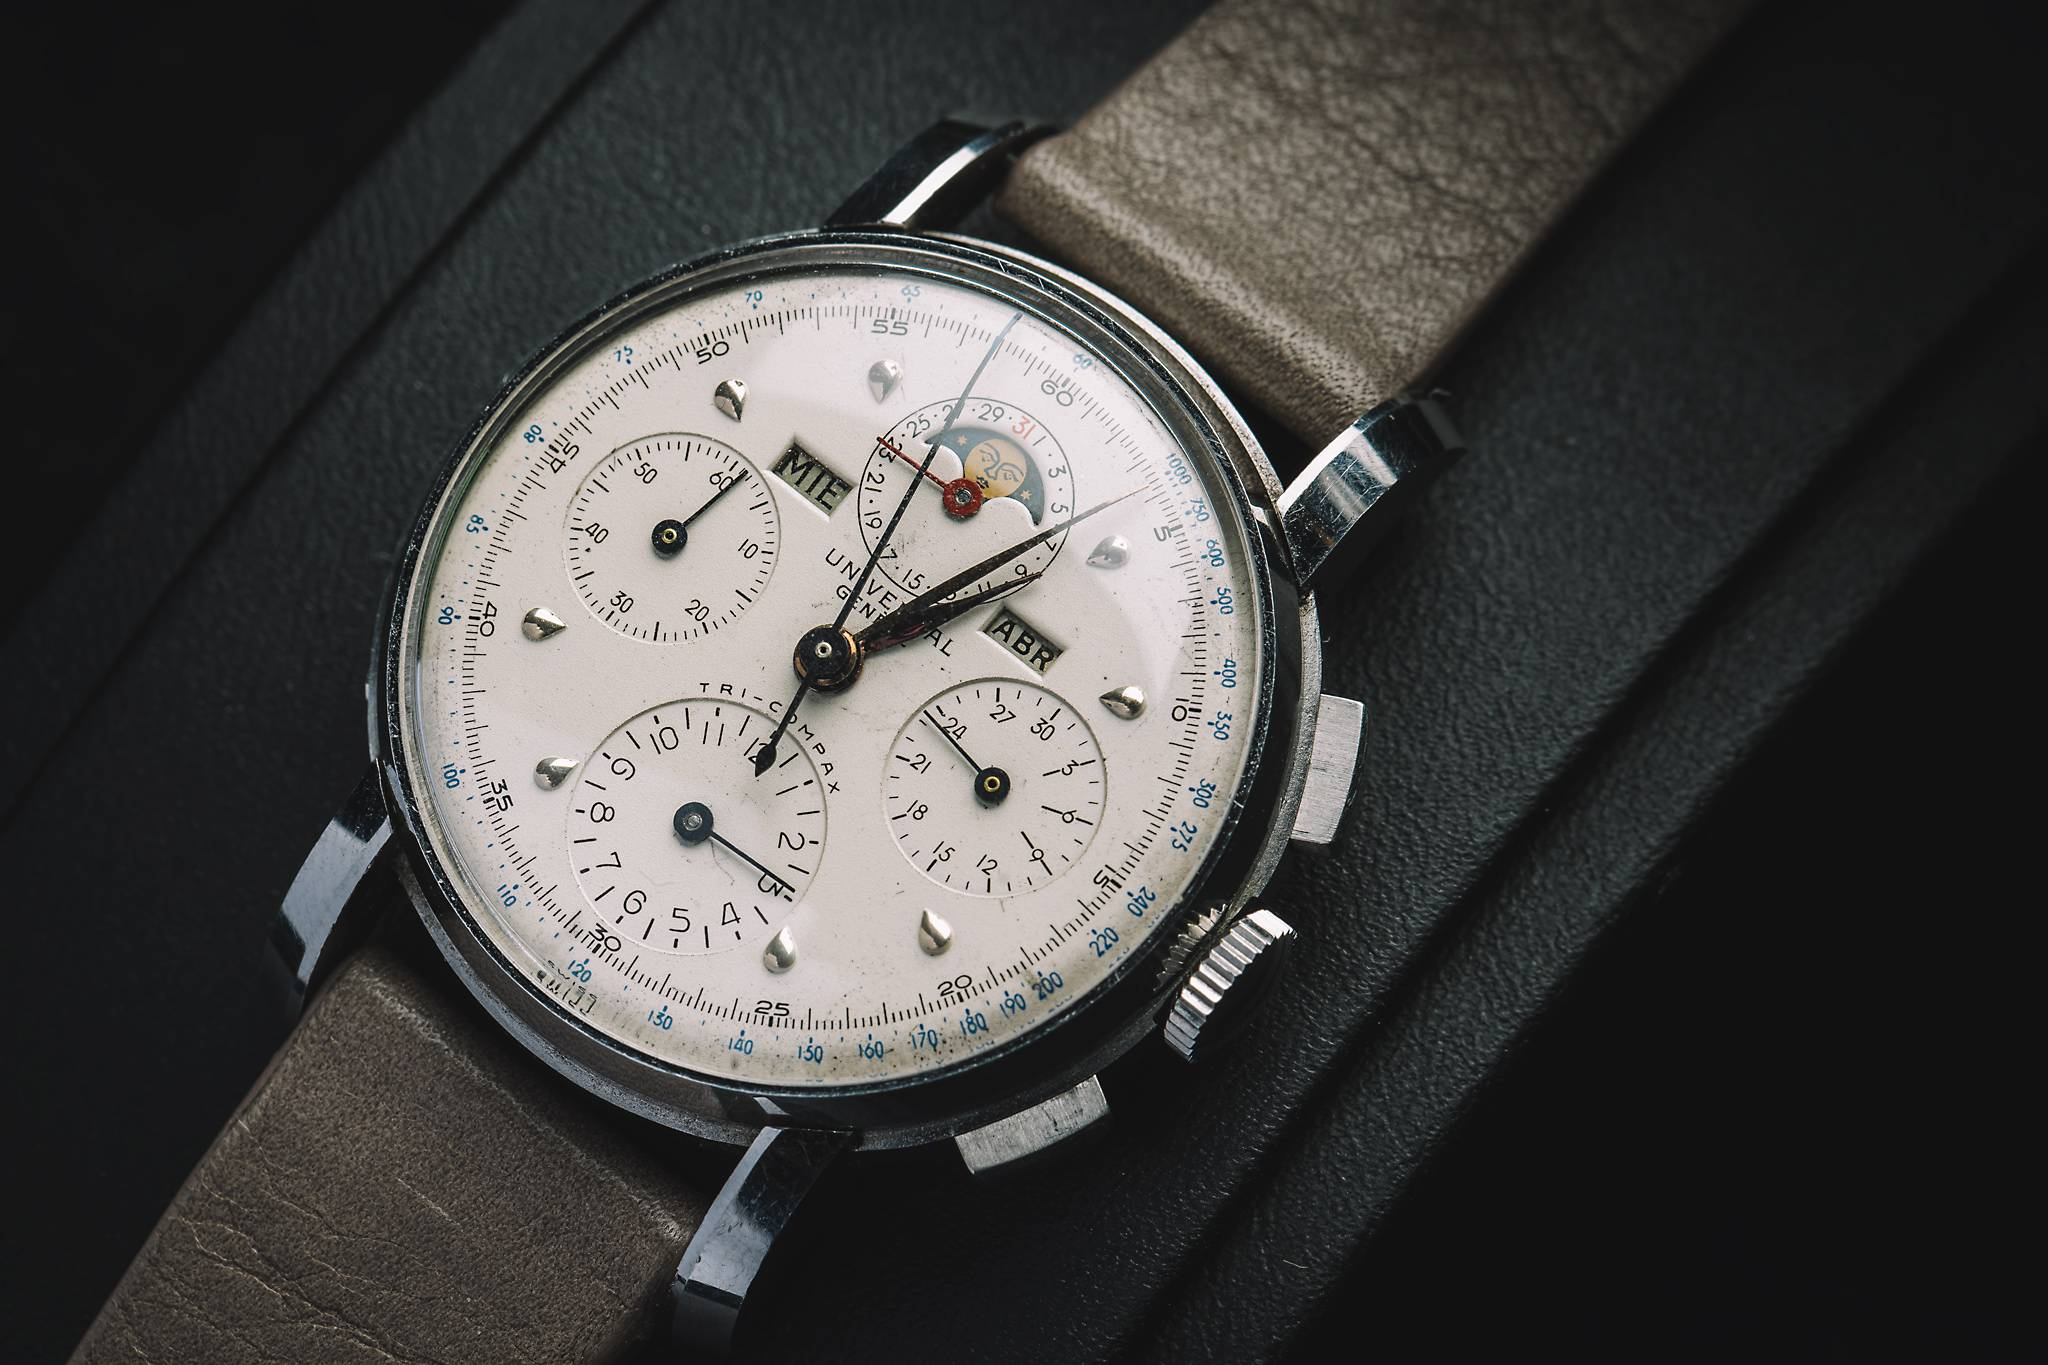 Universal Tri-Compax, 22541, Stainless steel, 1945